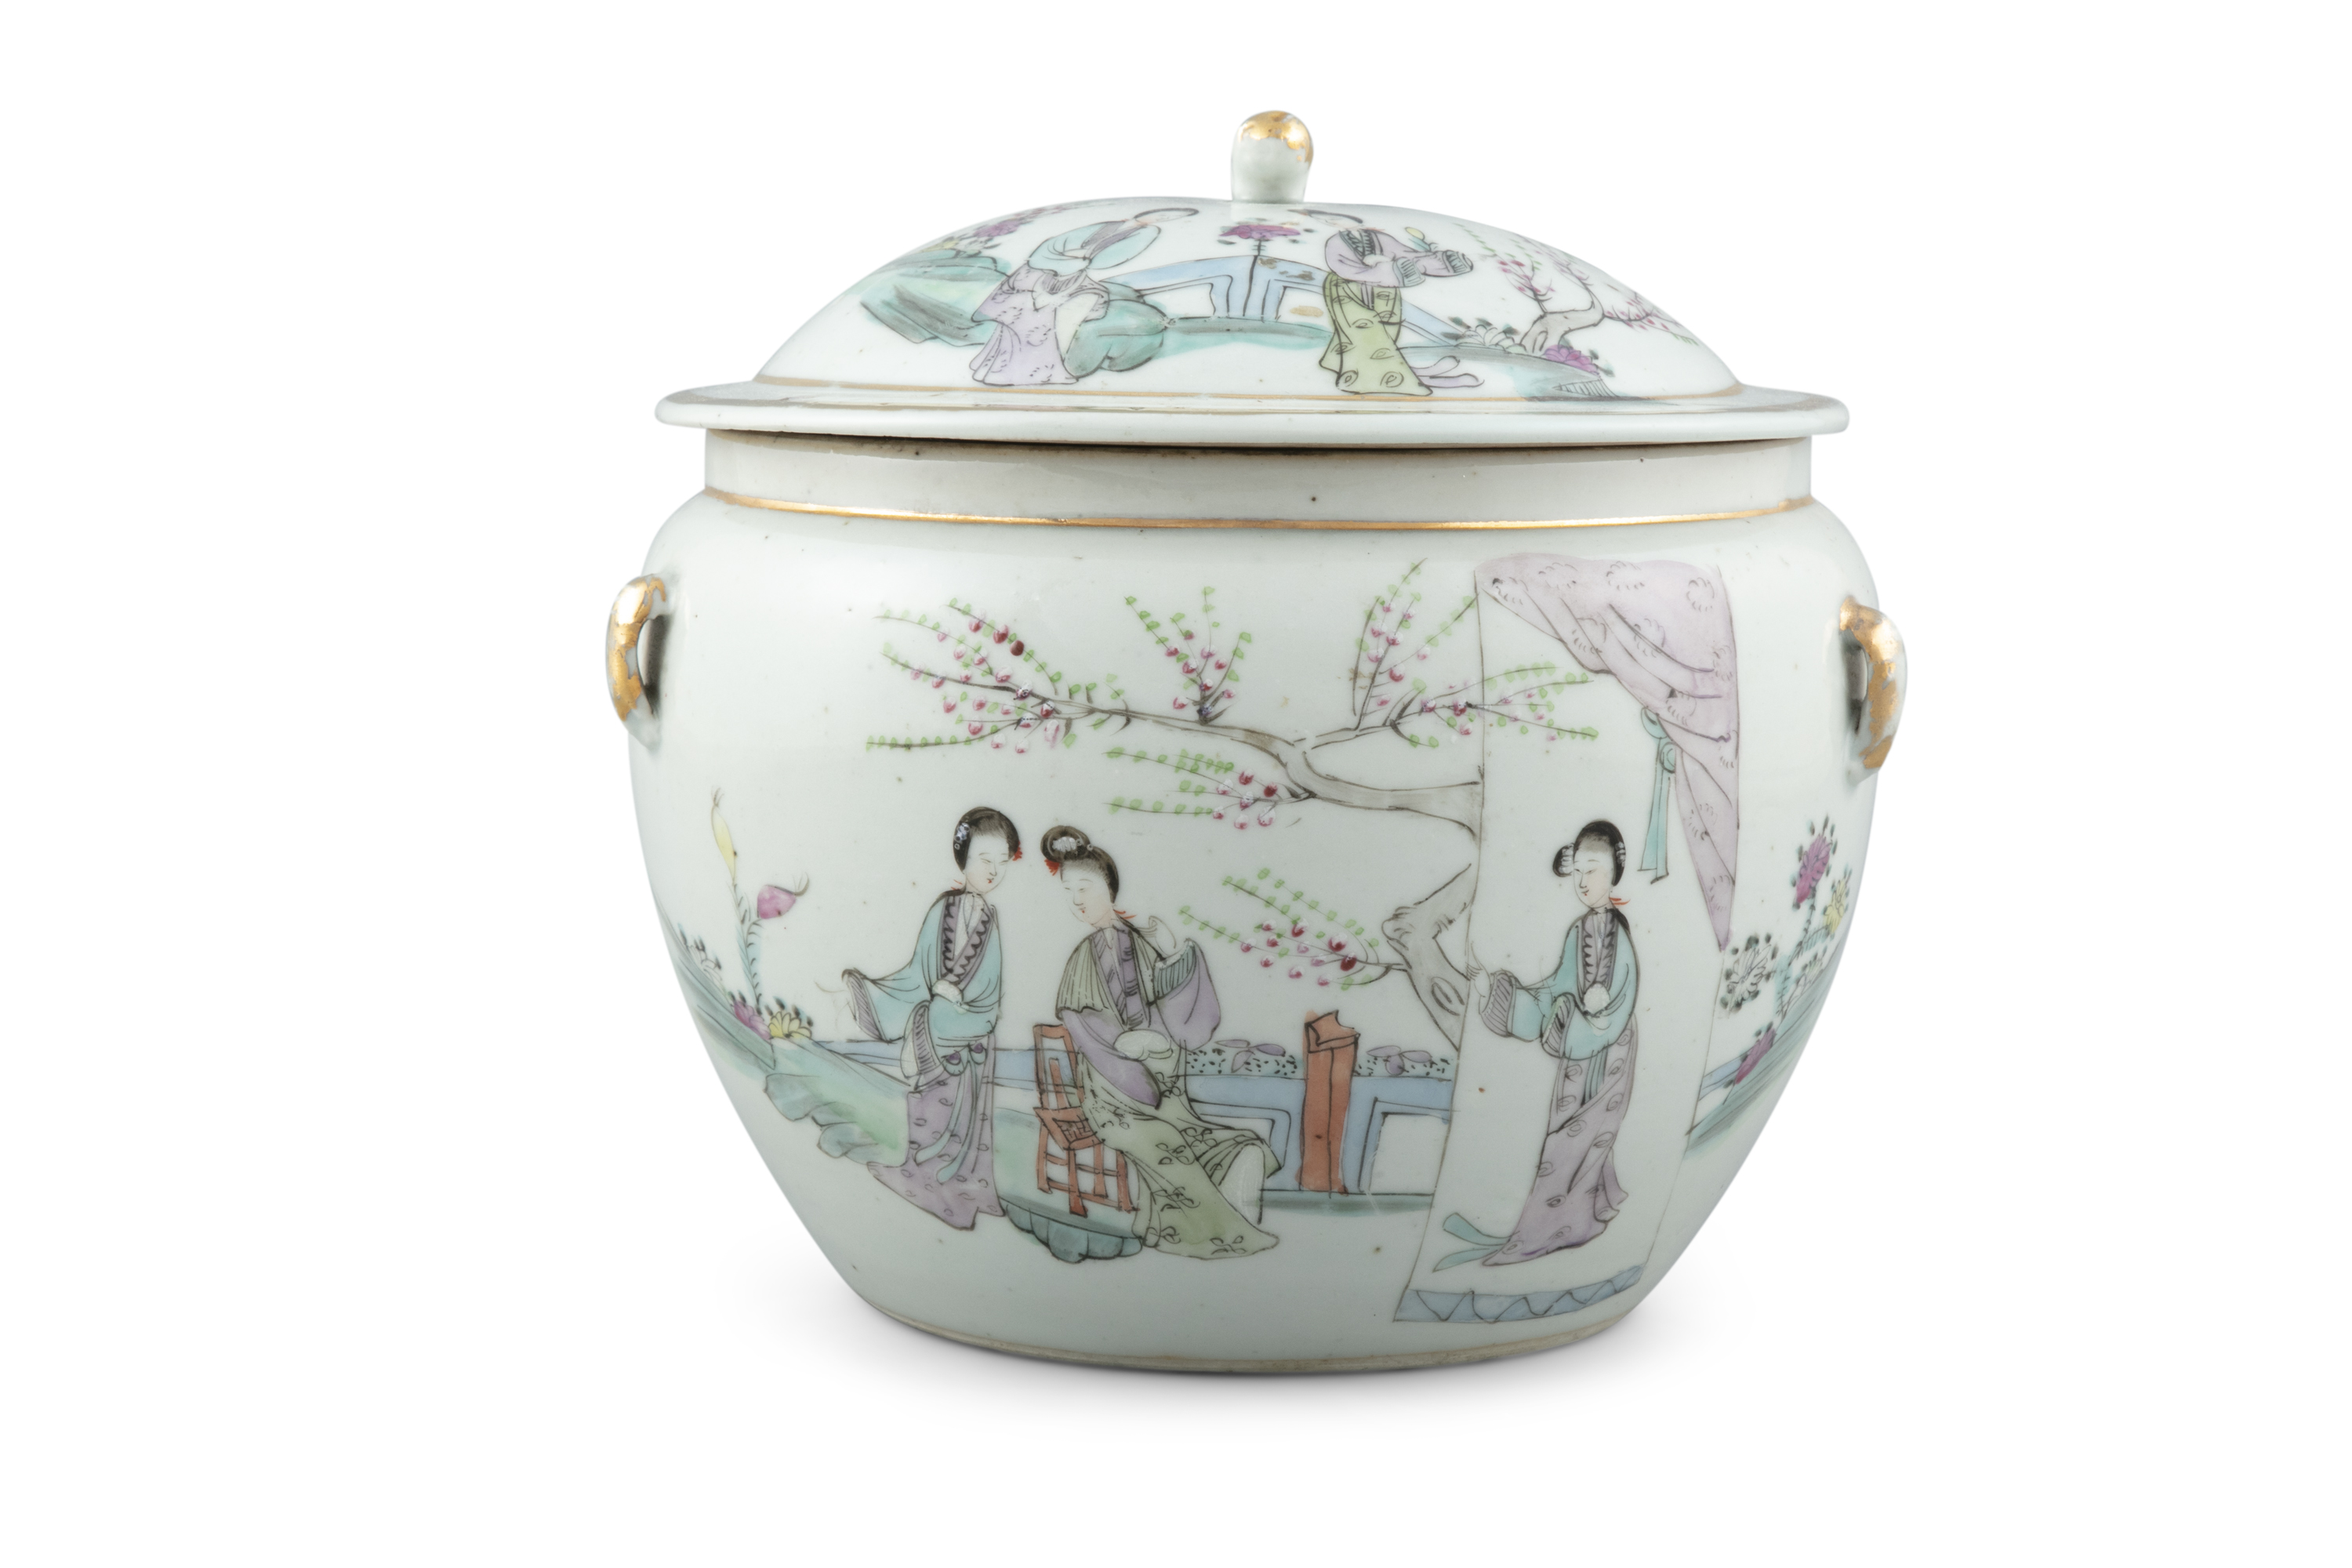 A QIANJIANG PORCELAIN TUREEN, KAMCHENG China, Republican period Adorned in the famille rose